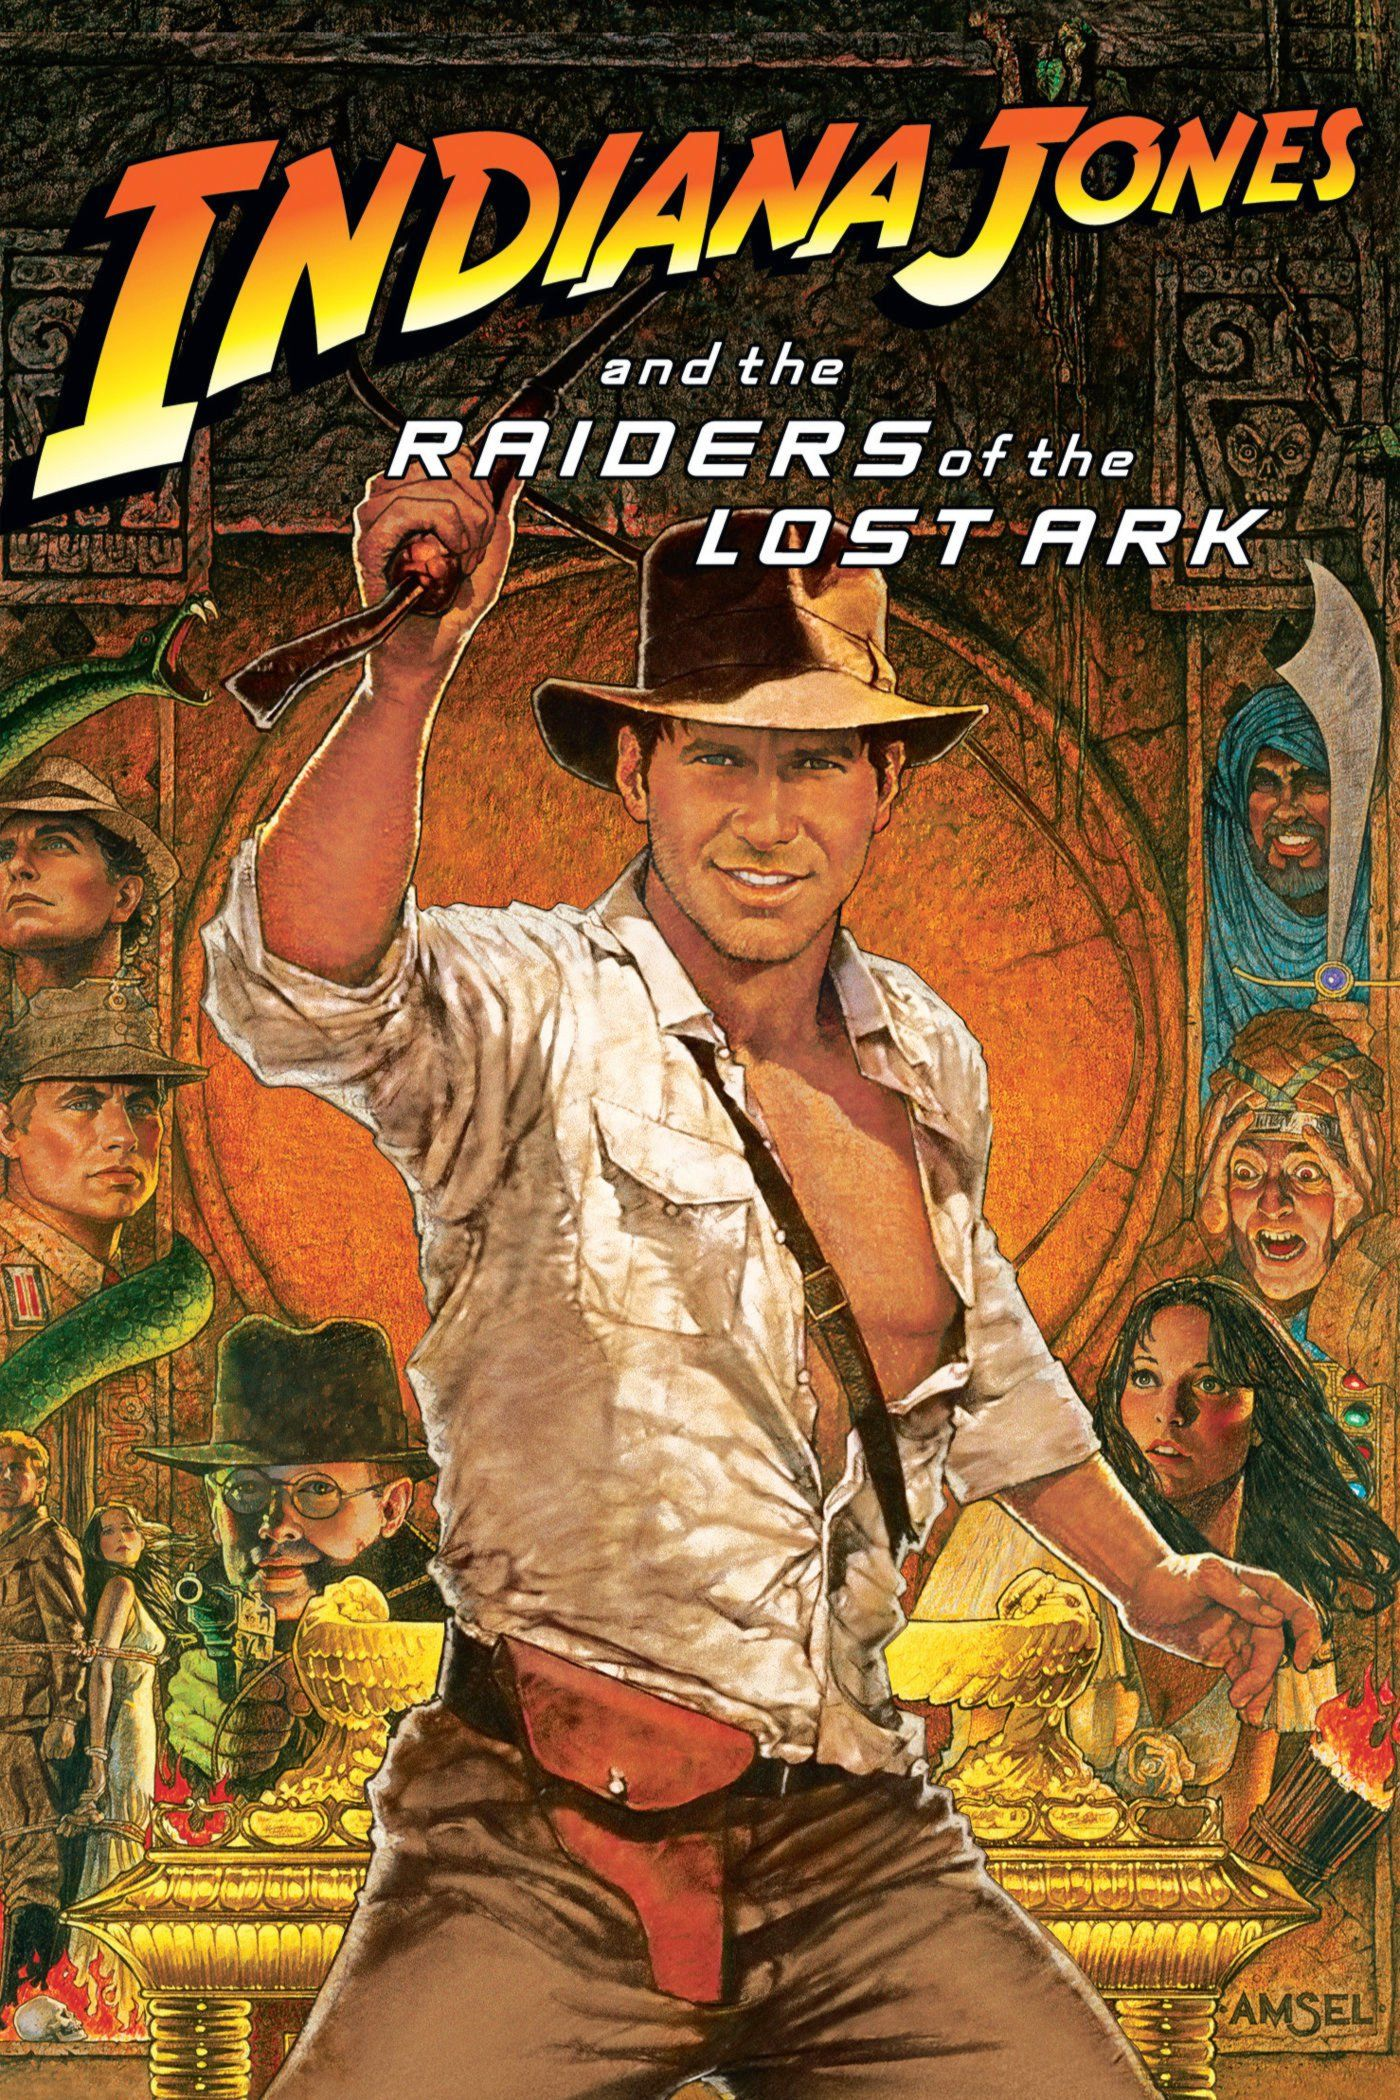 watch movie online raiders of the lost ark free download full hd